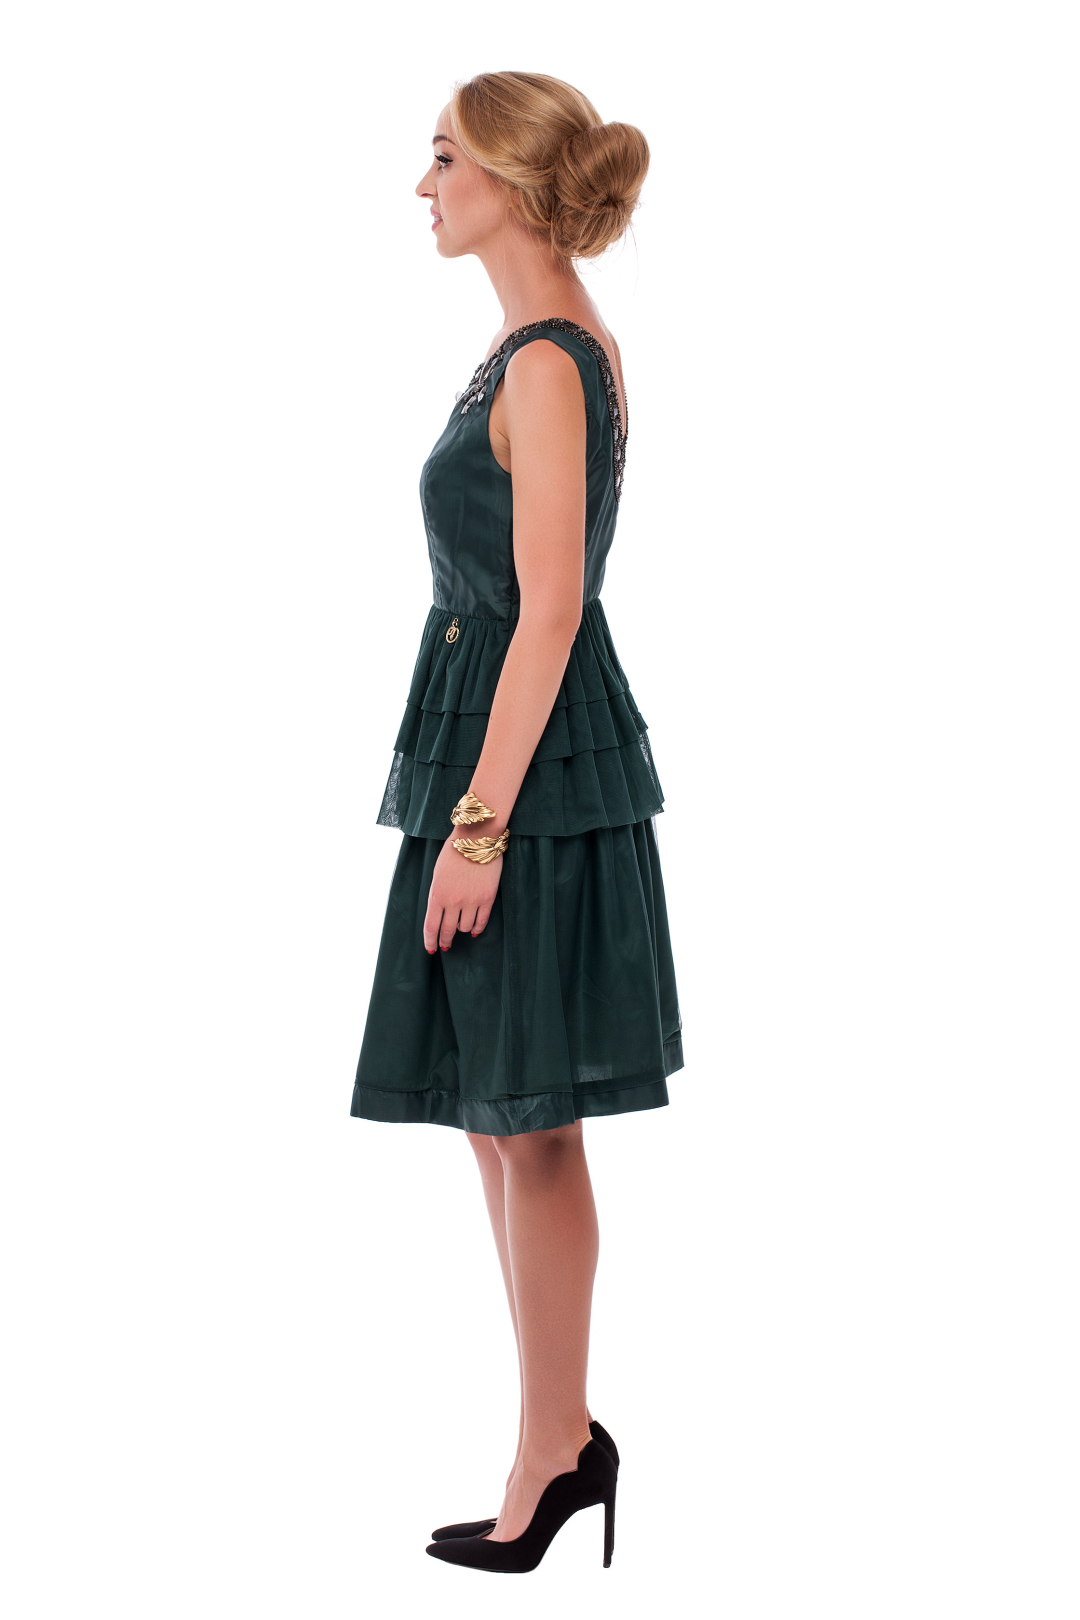 111a31df45a3 RENT BOUTIQUE / Lady In Green Dress